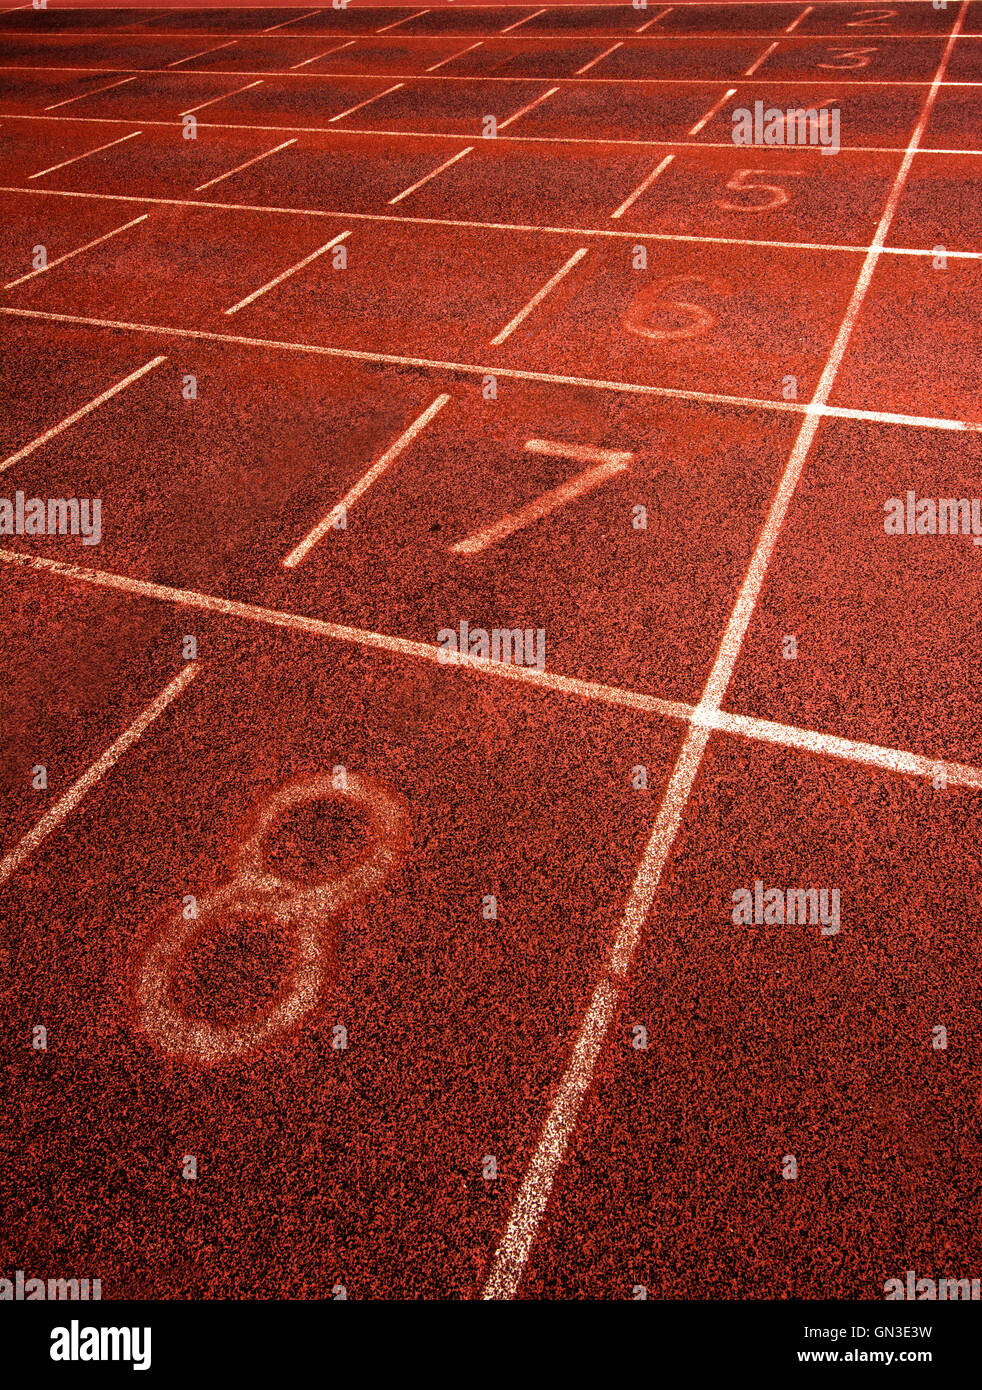 Markings on an athletics track - Stock Image